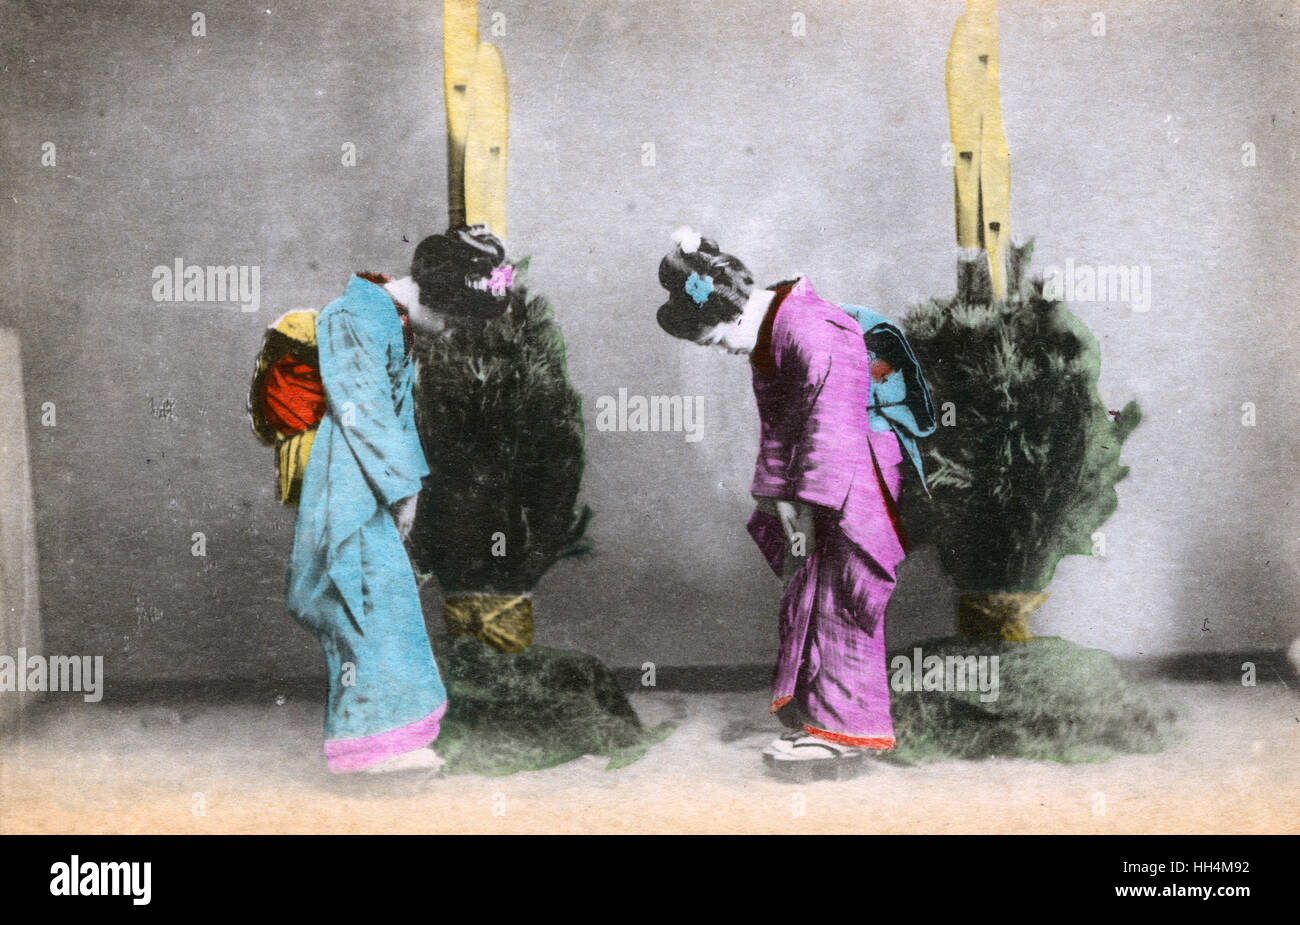 Japanese women bowing stock photos japanese women bowing stock two japanese women greet each other with a bow we are quite unable to ascertain m4hsunfo